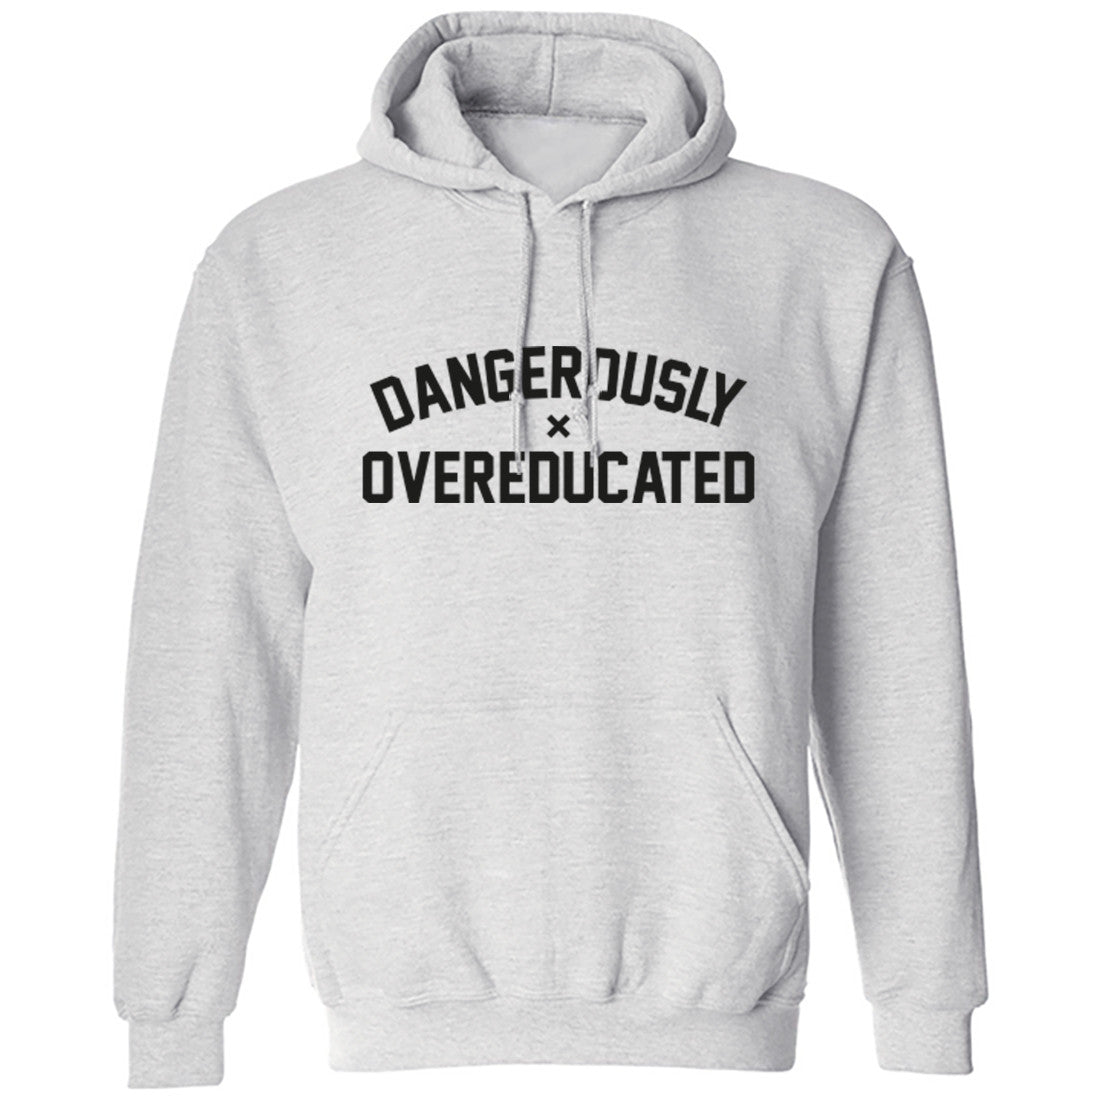 Dangerously Overeducated Unisex Hoodie K0251 - Illustrated Identity Ltd.